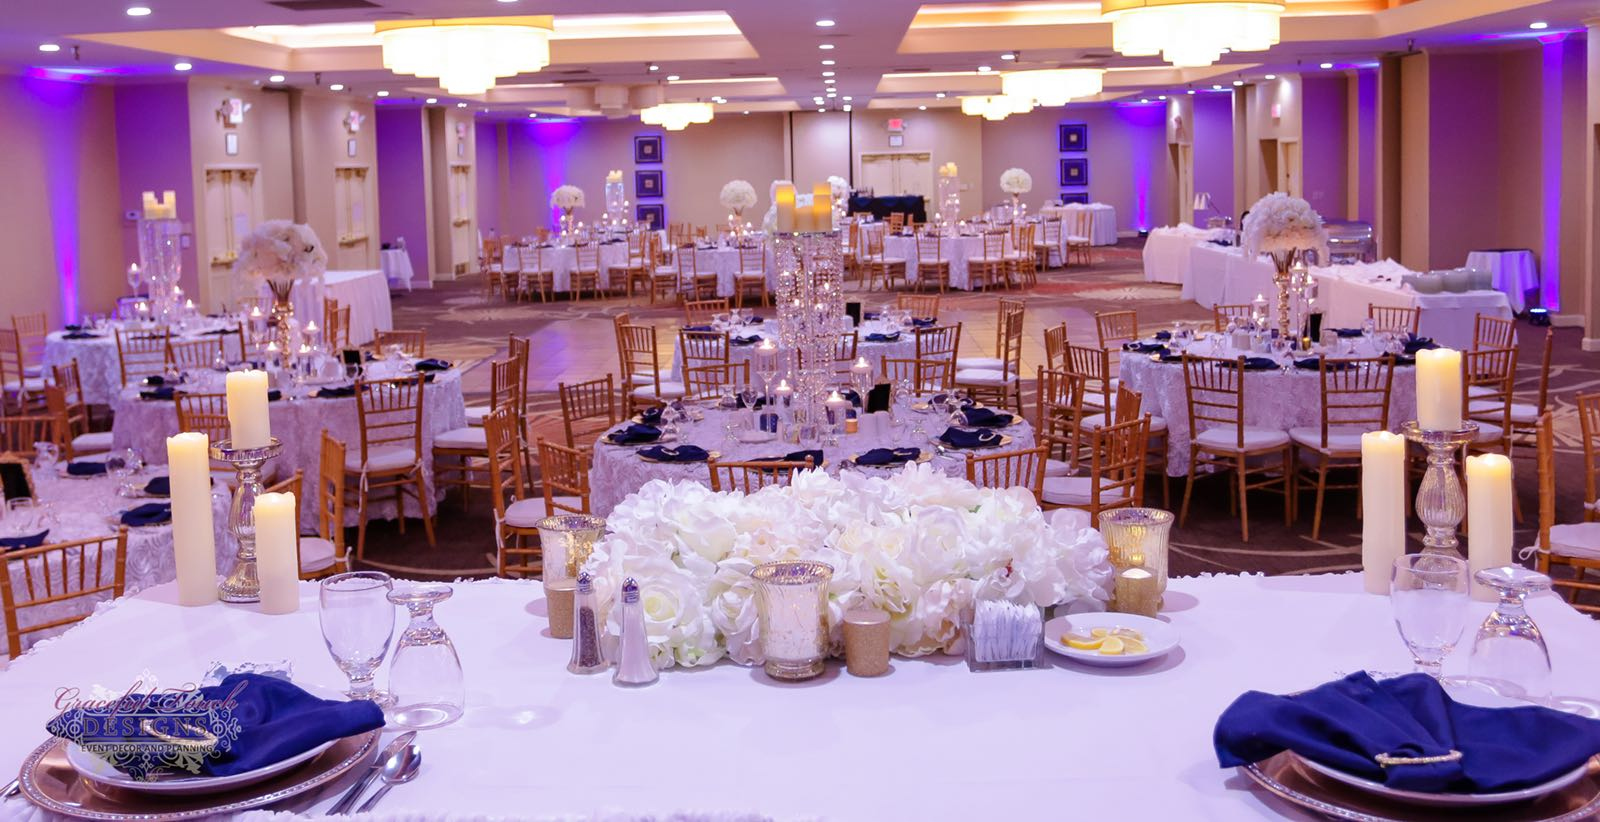 Royal Purple And Gold Wedding Decor  from s3-us-west-2.amazonaws.com